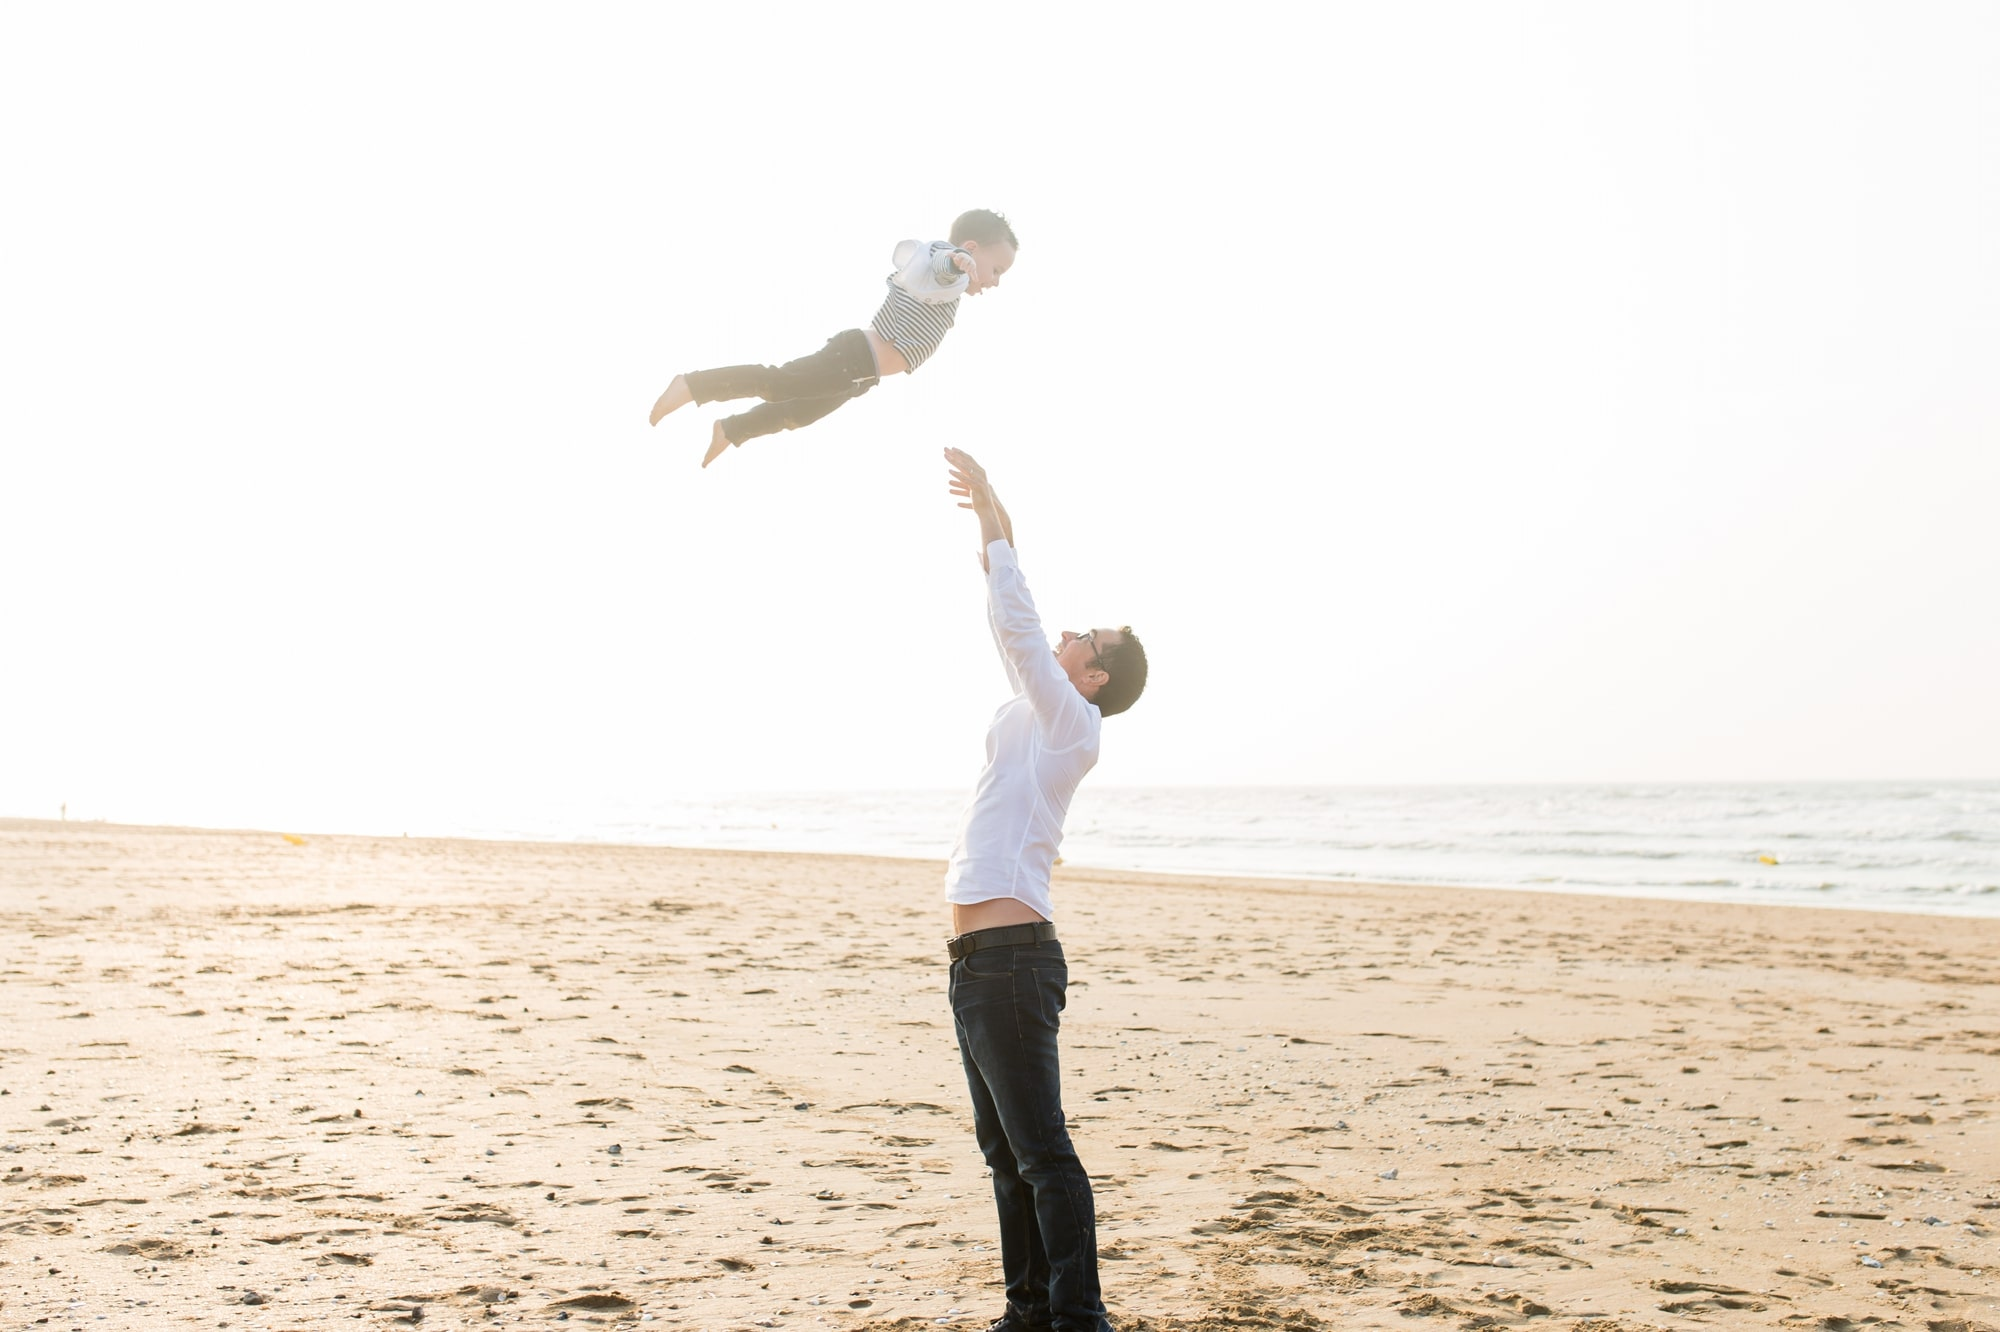 séance famille cabourg basse normandie photographe shooting lifestyle-8